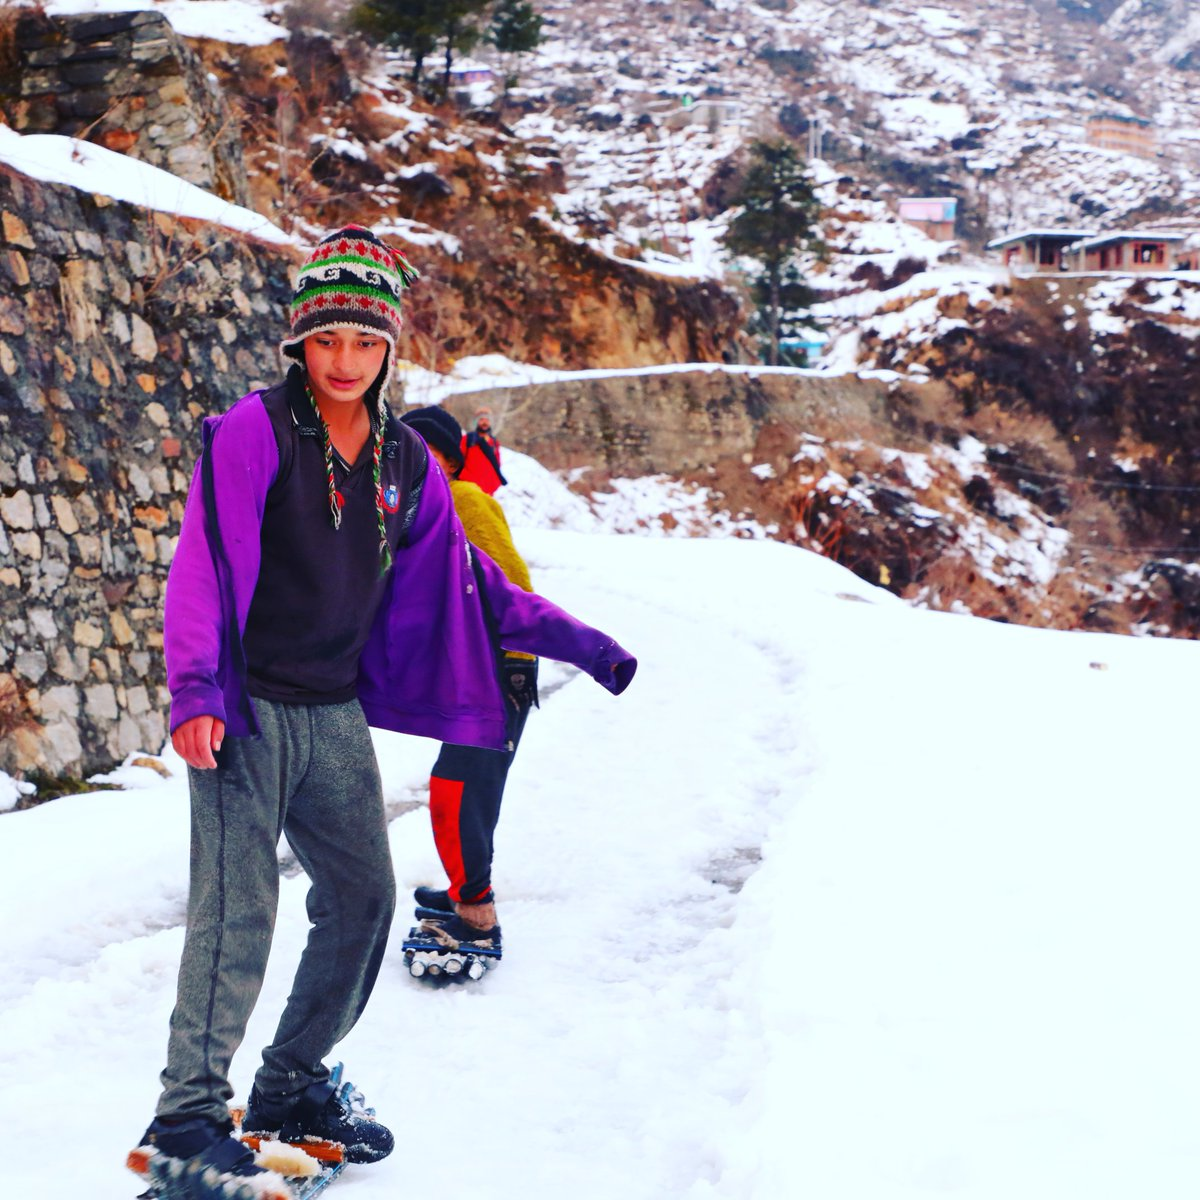 Imagine a childhood having months of winter breaks in School. Spending your winters #snowboarding and #skiing That's the Childhood you get up here in #Tosh #Kullu that high in #Himalayas Good to watch young kids getting used to sports where we lag far behind.